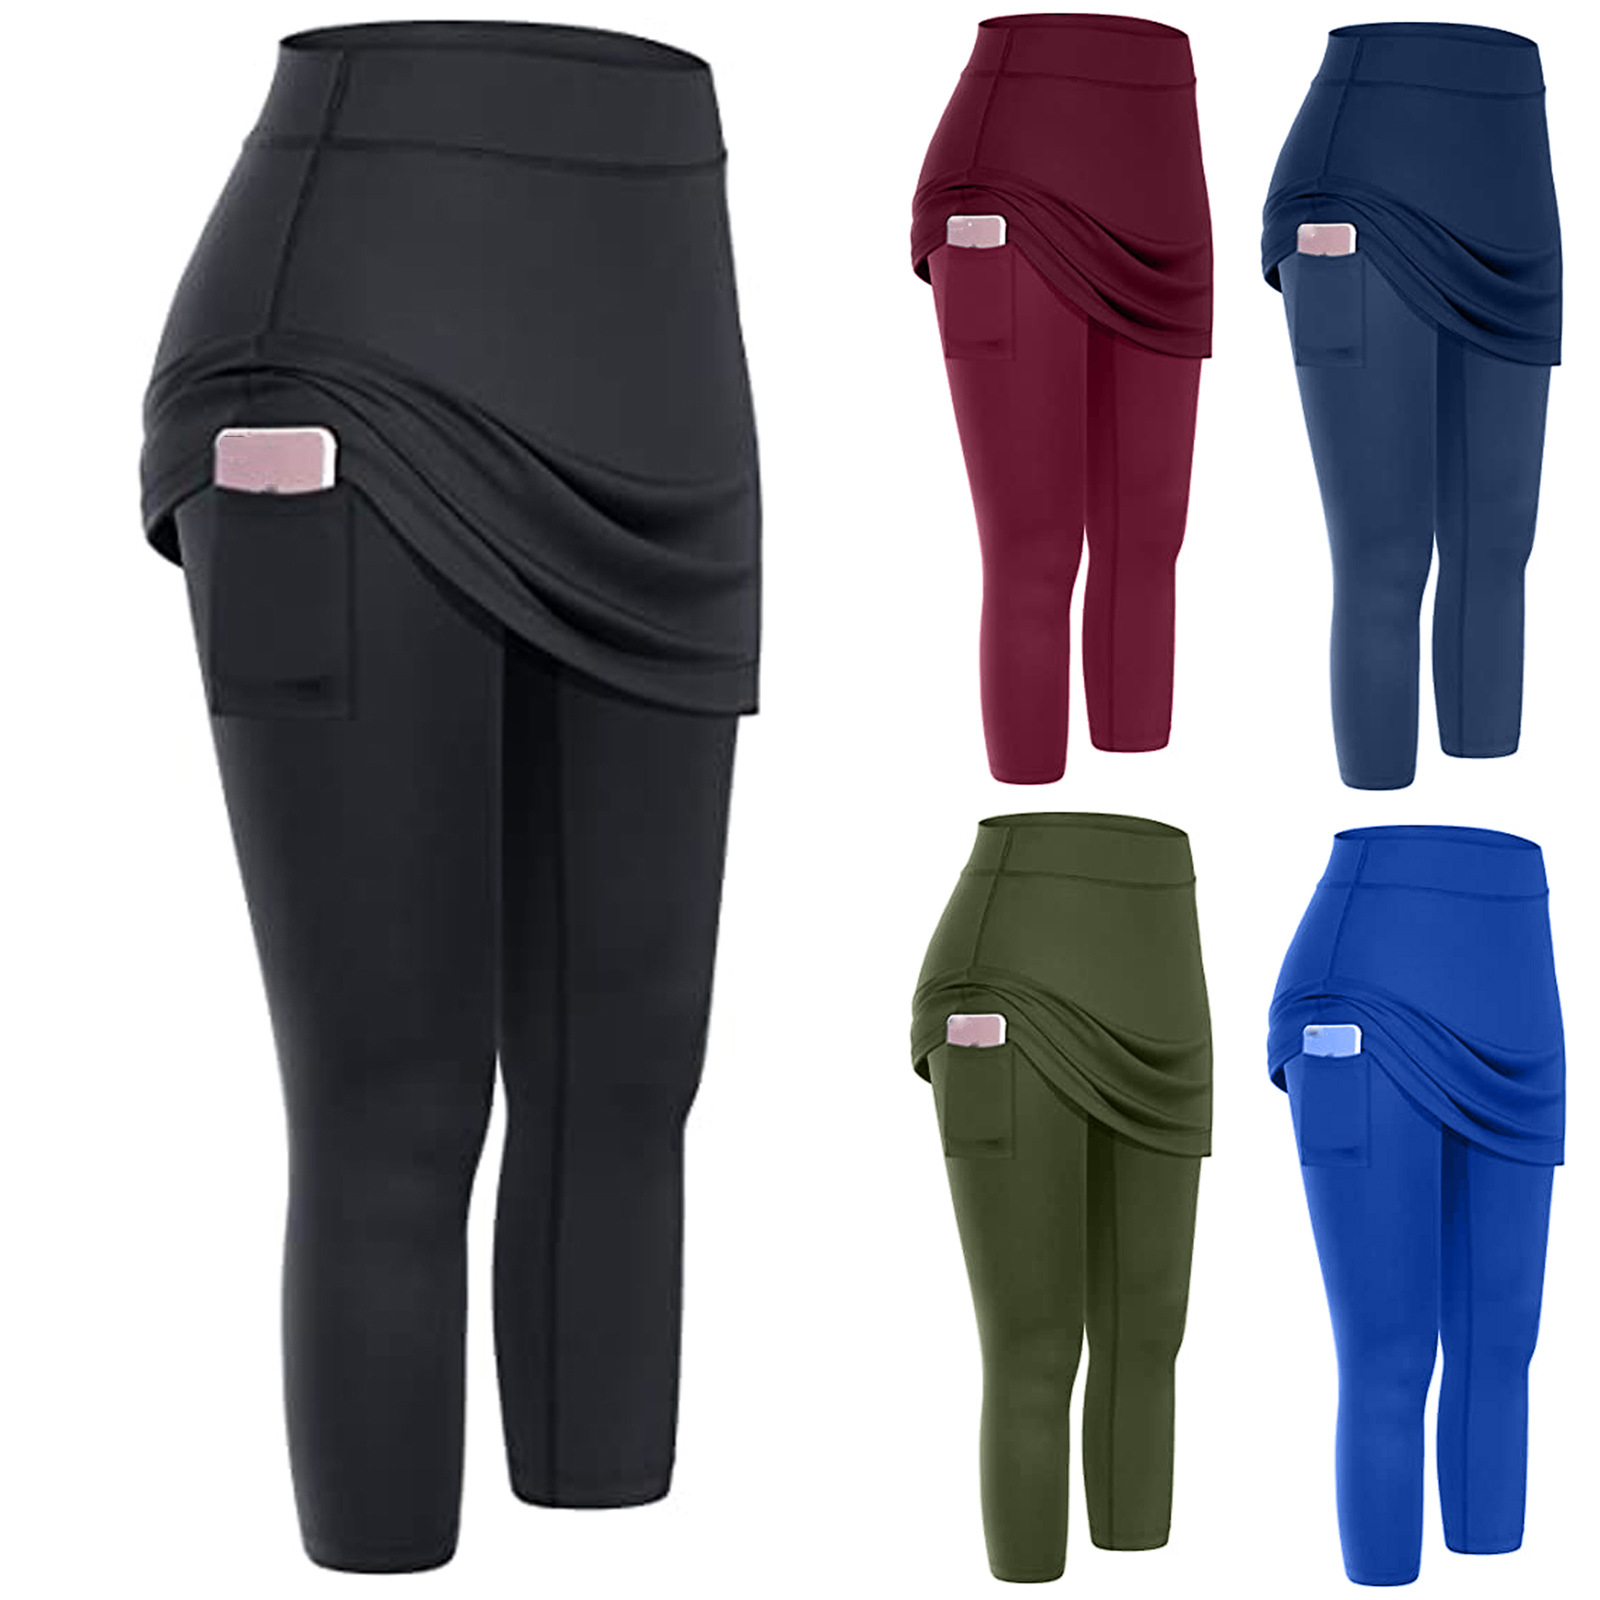 Cropped comfortable pants with pockets